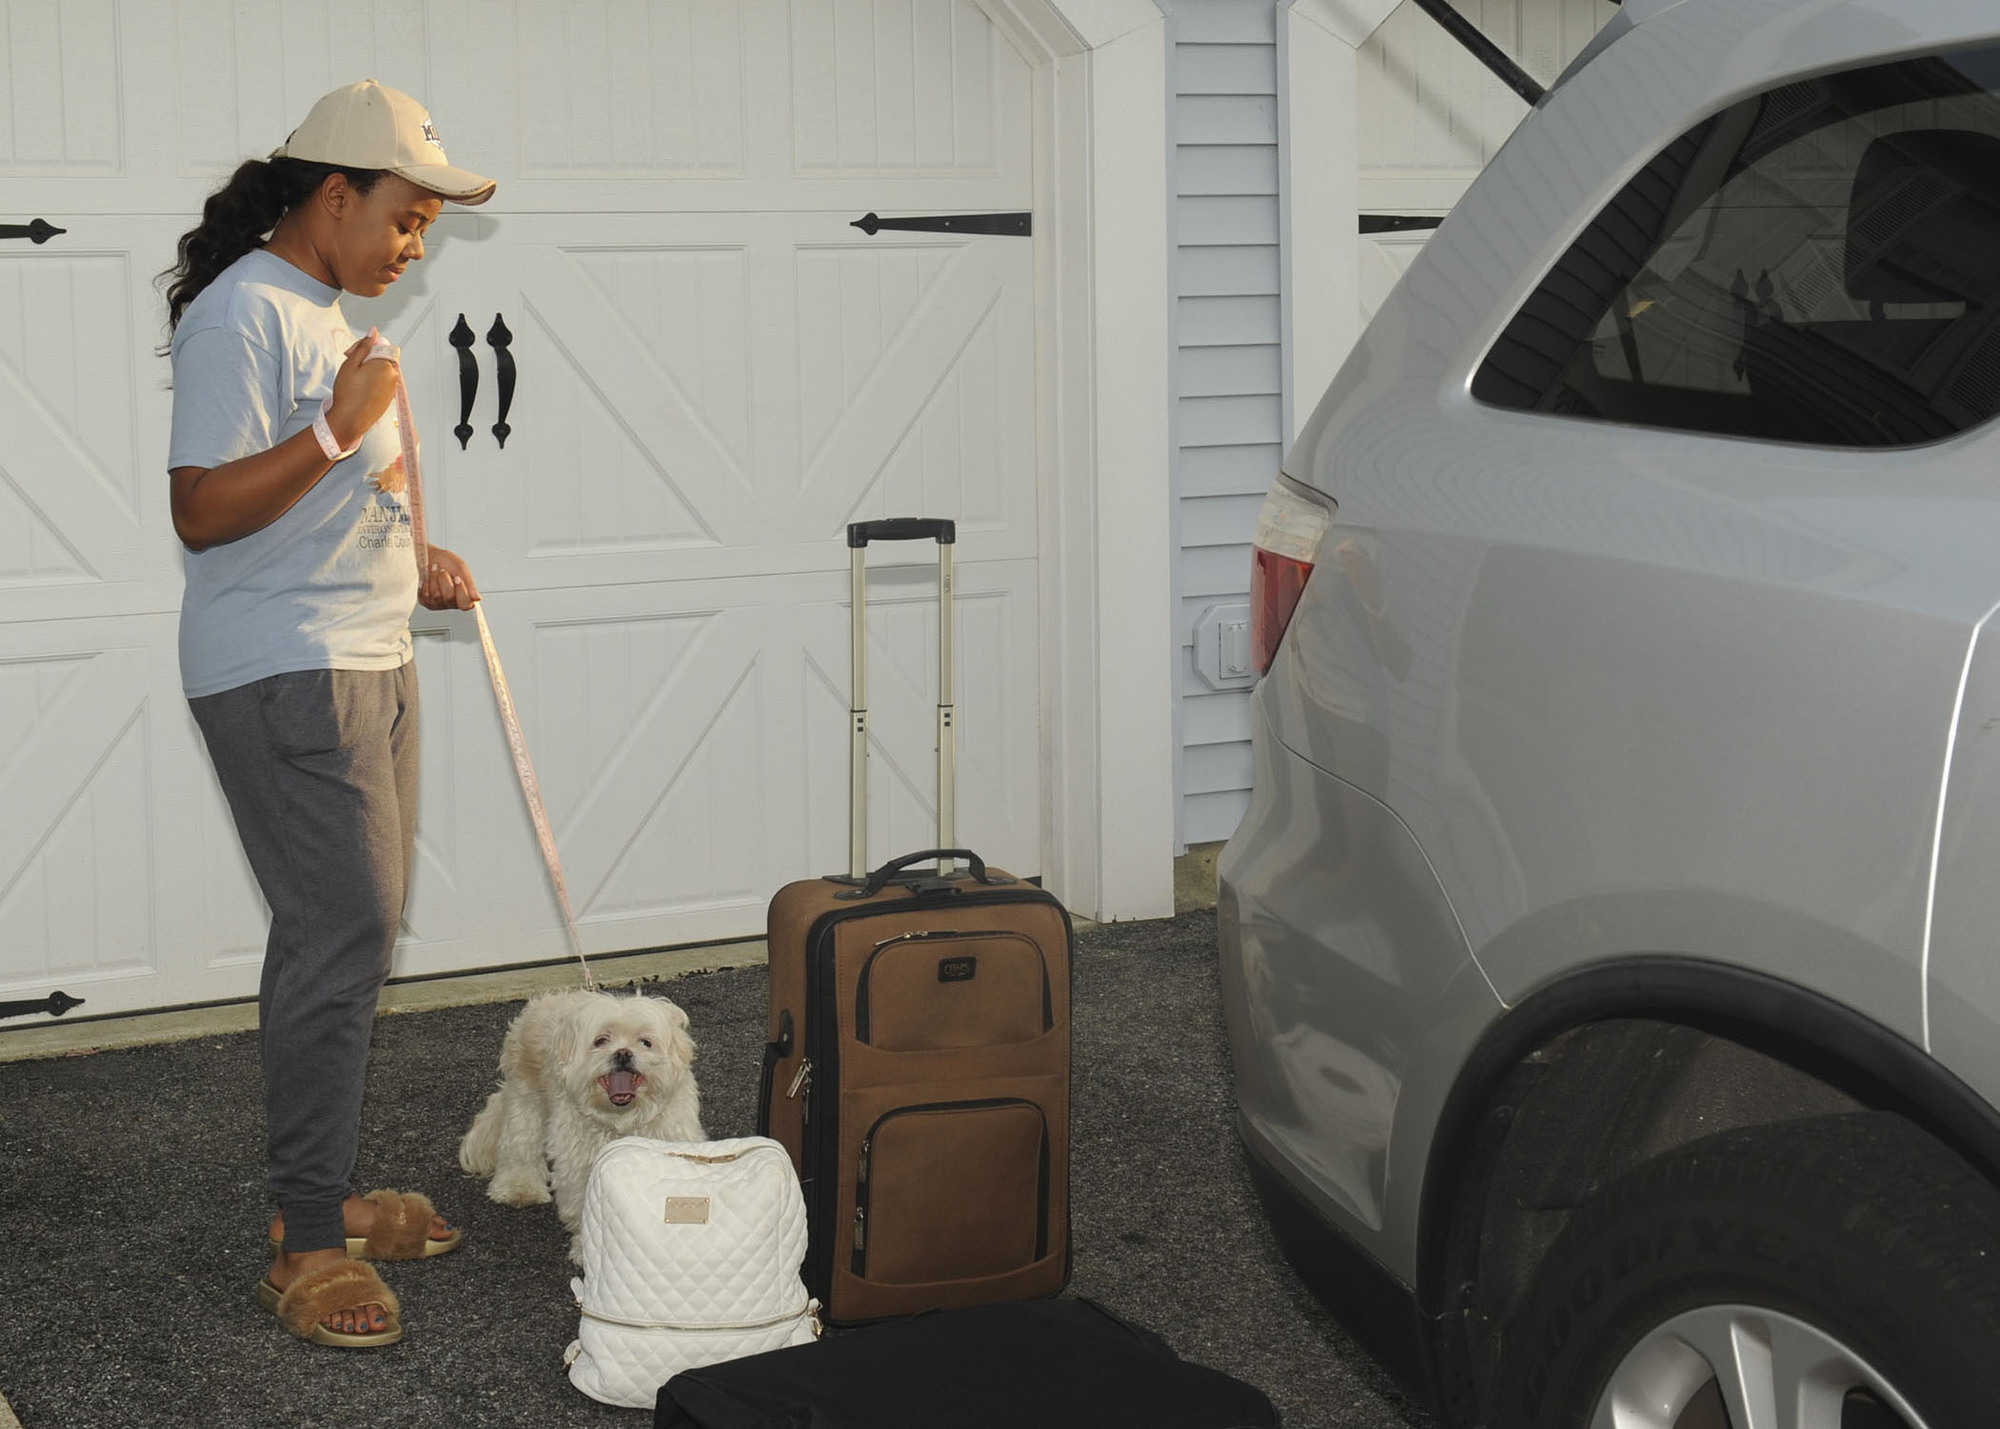 woman with luggage and a dog